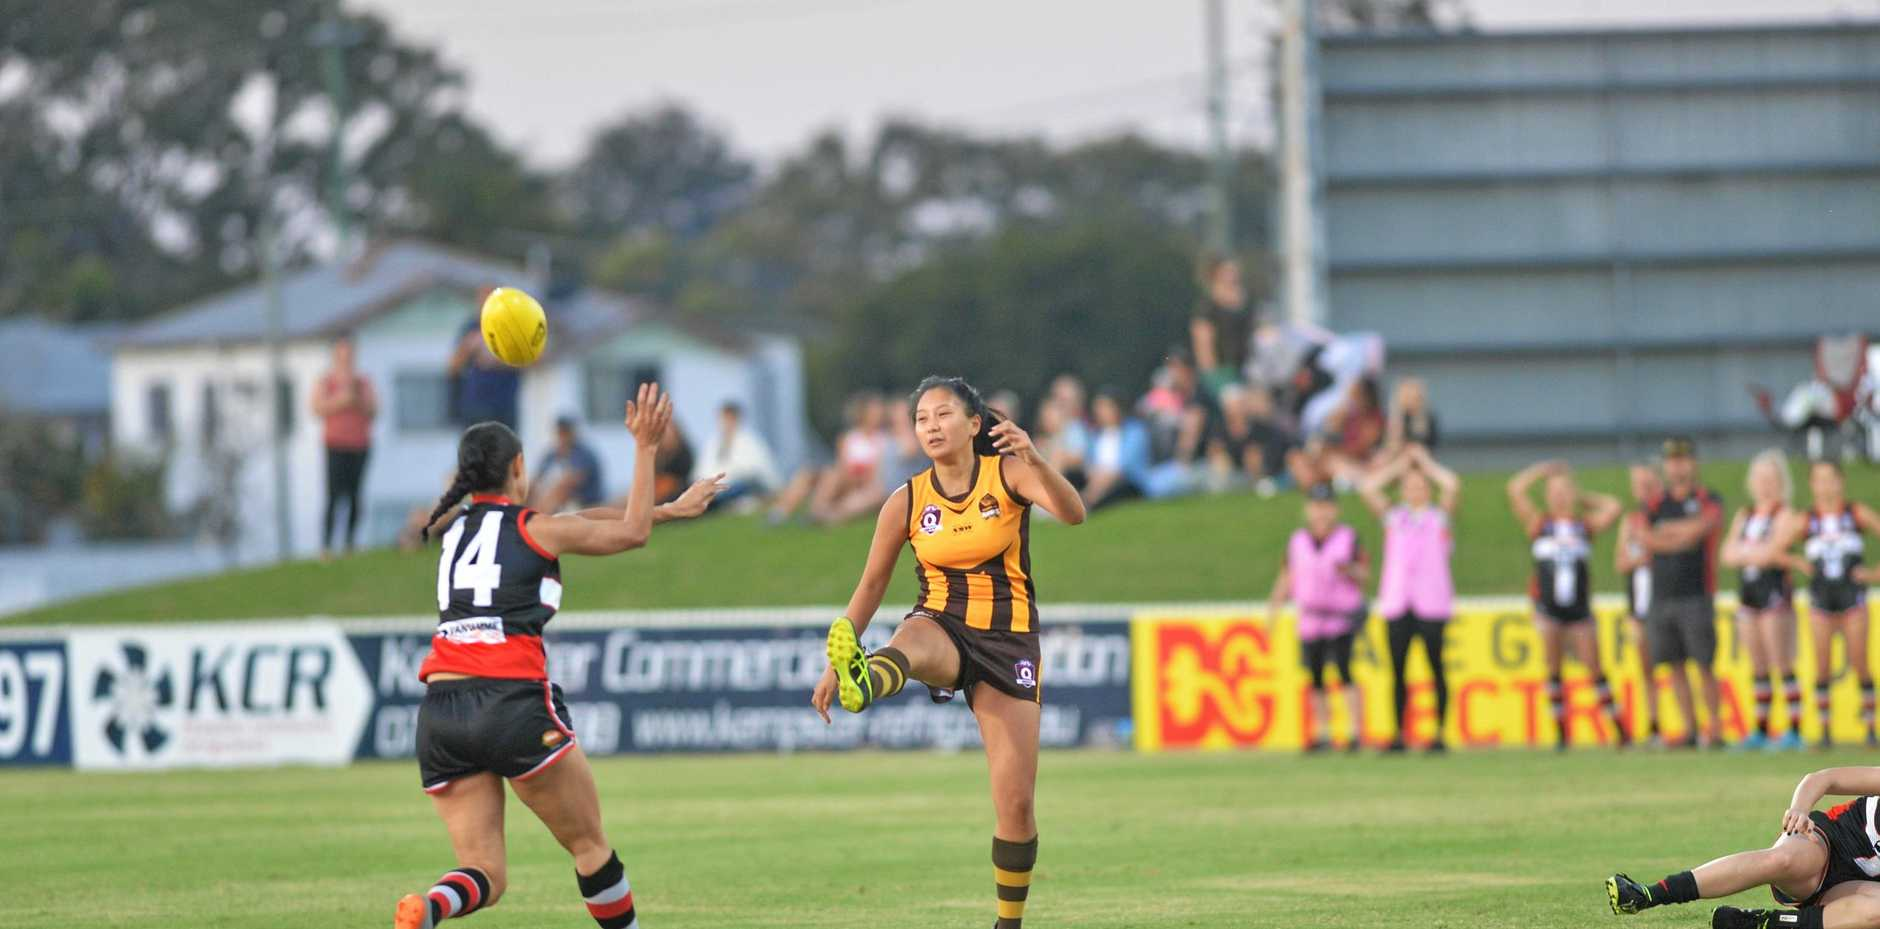 FIRST TIME: Mackay City Hawks will play their first ever grand final against 2018 premiers Bakers Creek Tigers.  INSET: Mackay City Hawks Kelly Hegarty will face her former team in the AFL Mackay women's grand final.